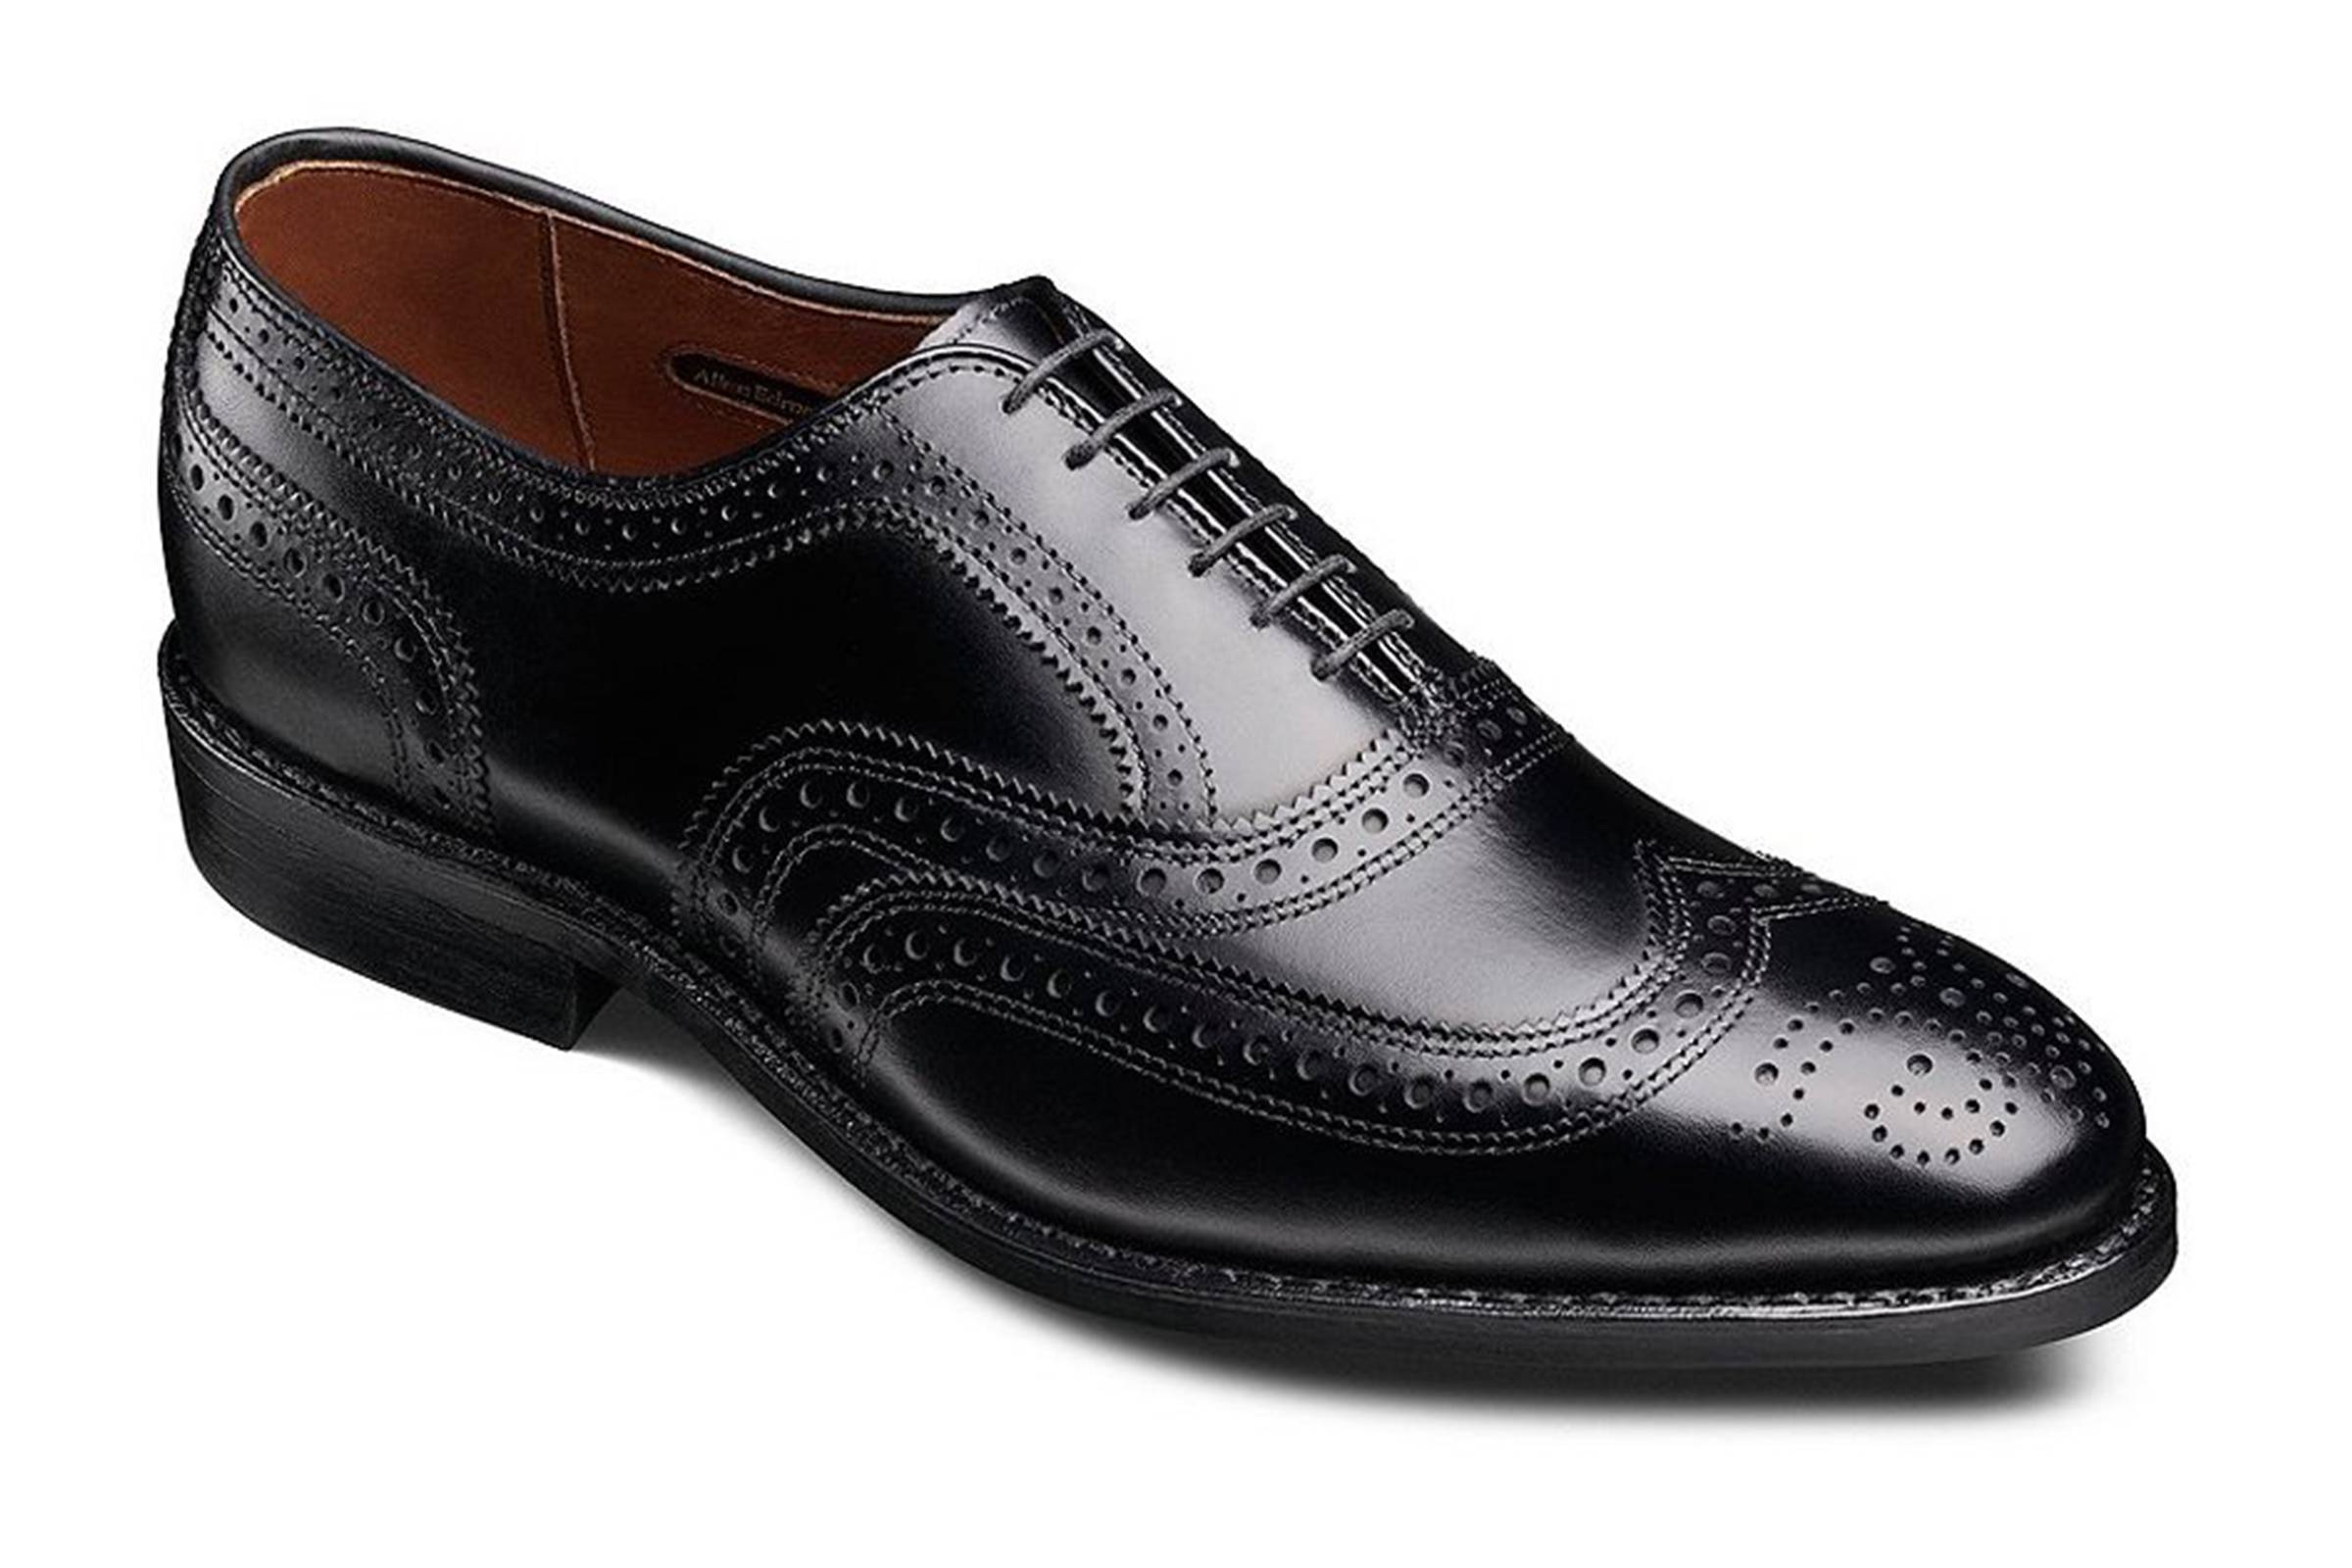 Full Brogues (Wingtips)